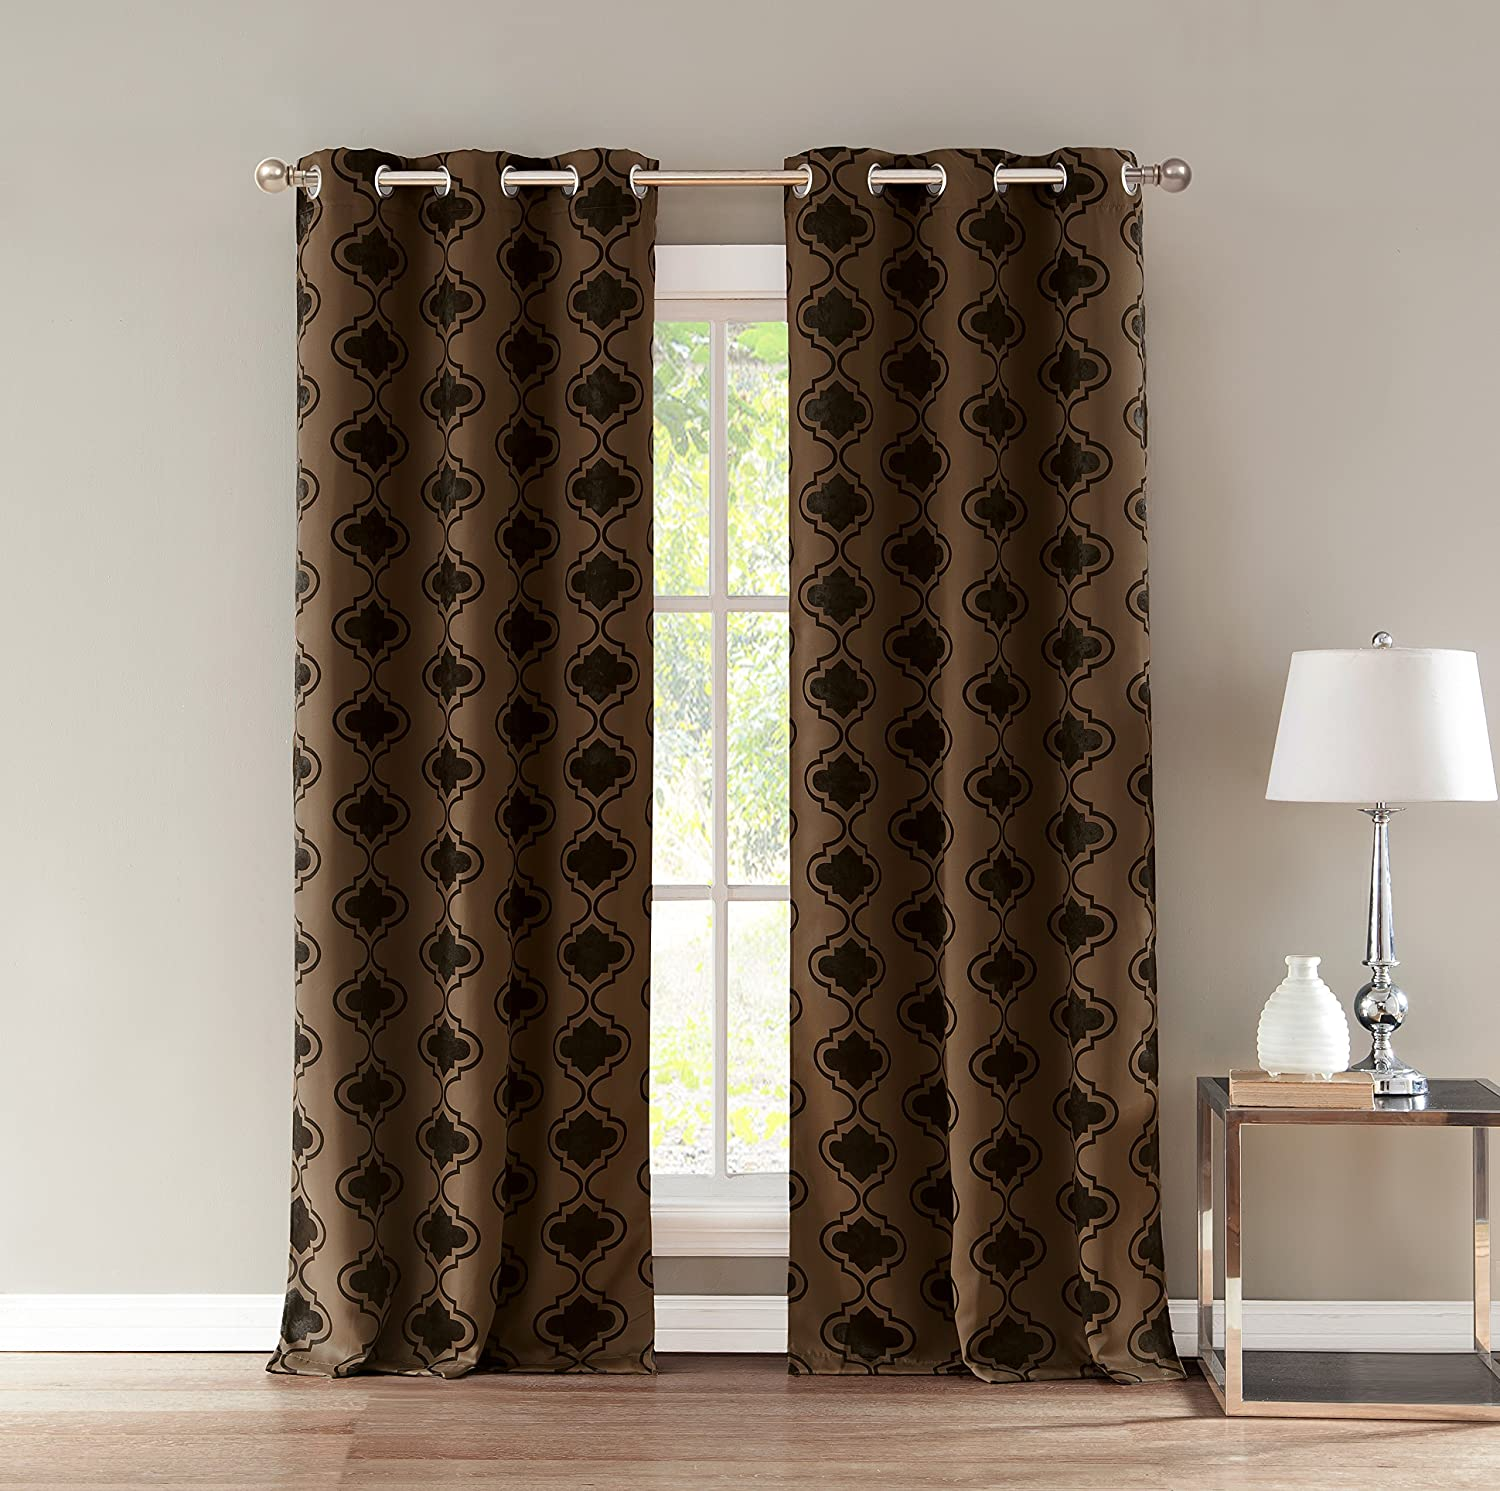 Brown Duck River Textile Home Fashion Geometric Linen Textured Blackout Darkening Grommet Top Window Curtains Pair Drapes for Bedroom 36 X 84 Living Room-Set of 2 Panels